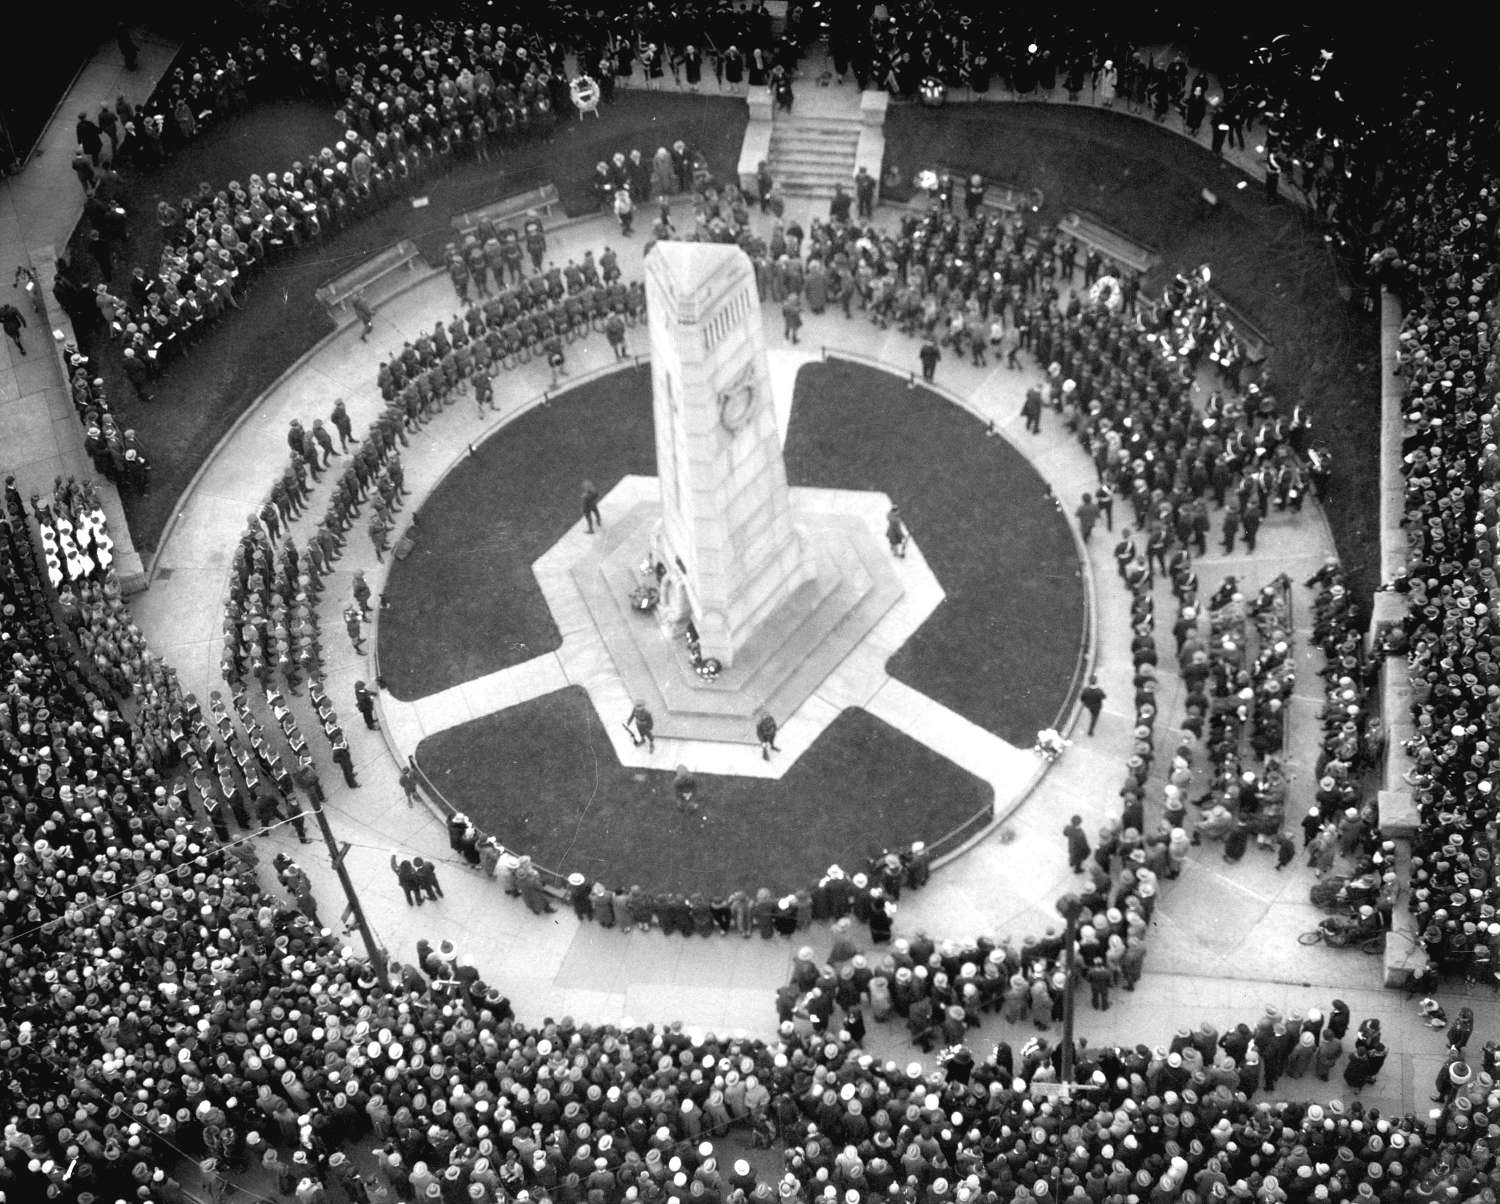 image of people at cenotaph